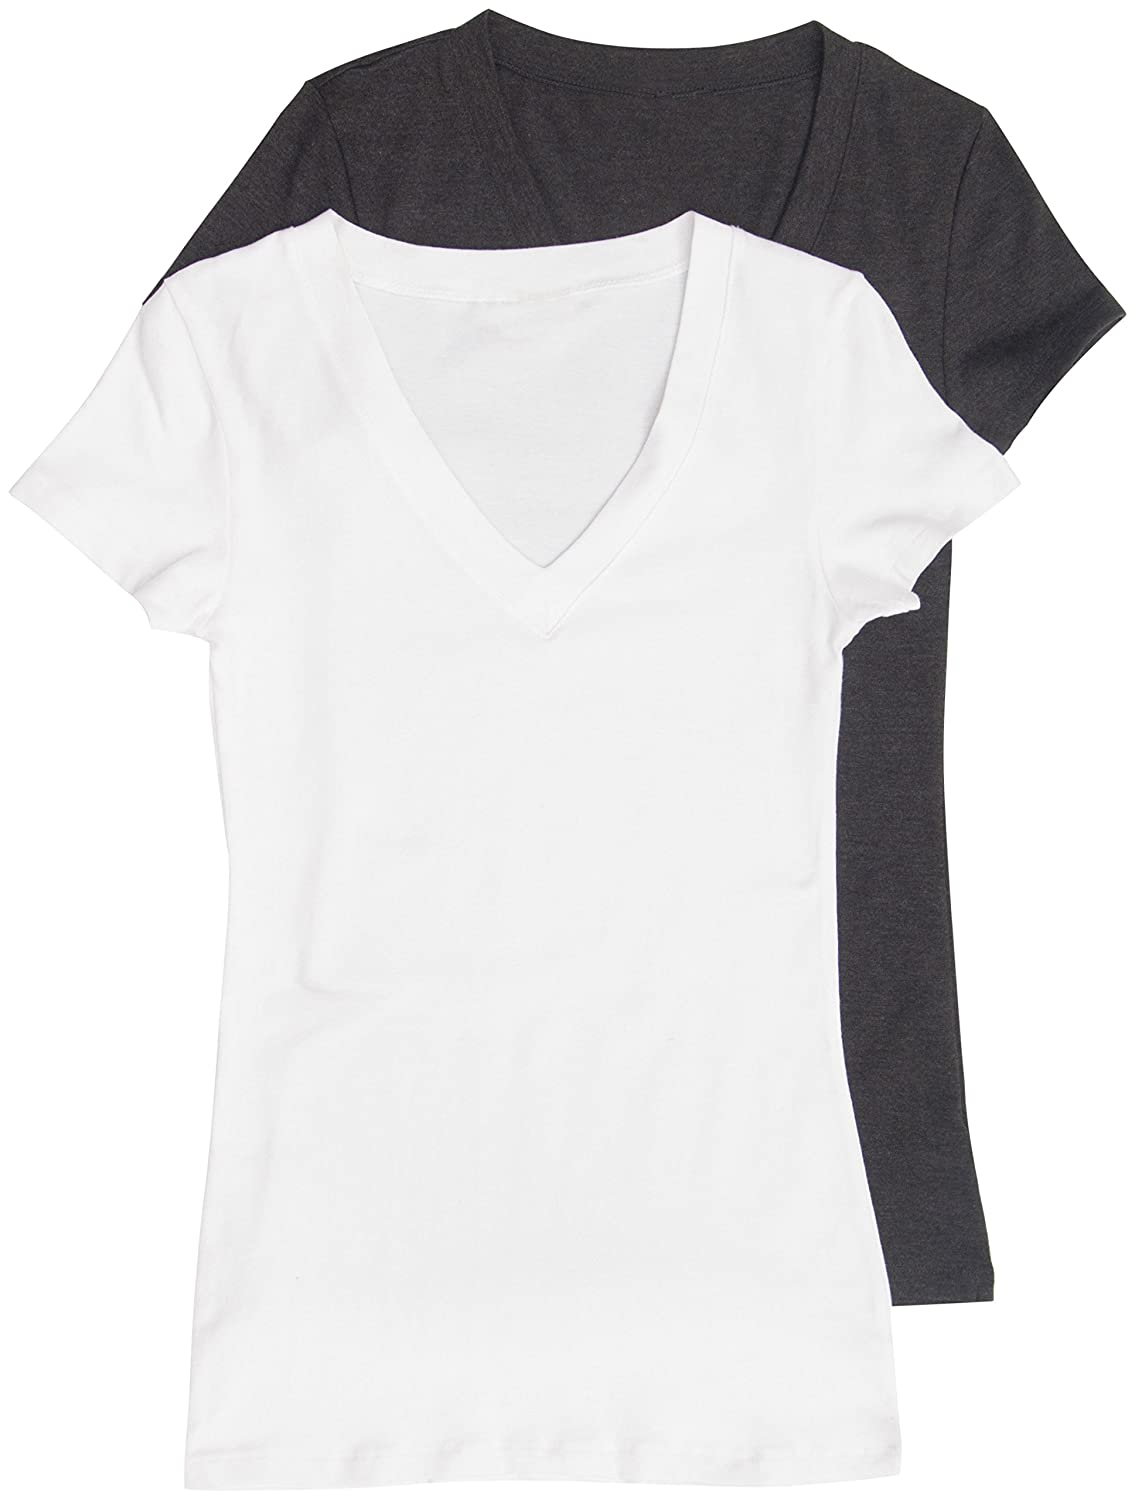 2 Pack Zenana Women's Basic V-Neck T-Shirts